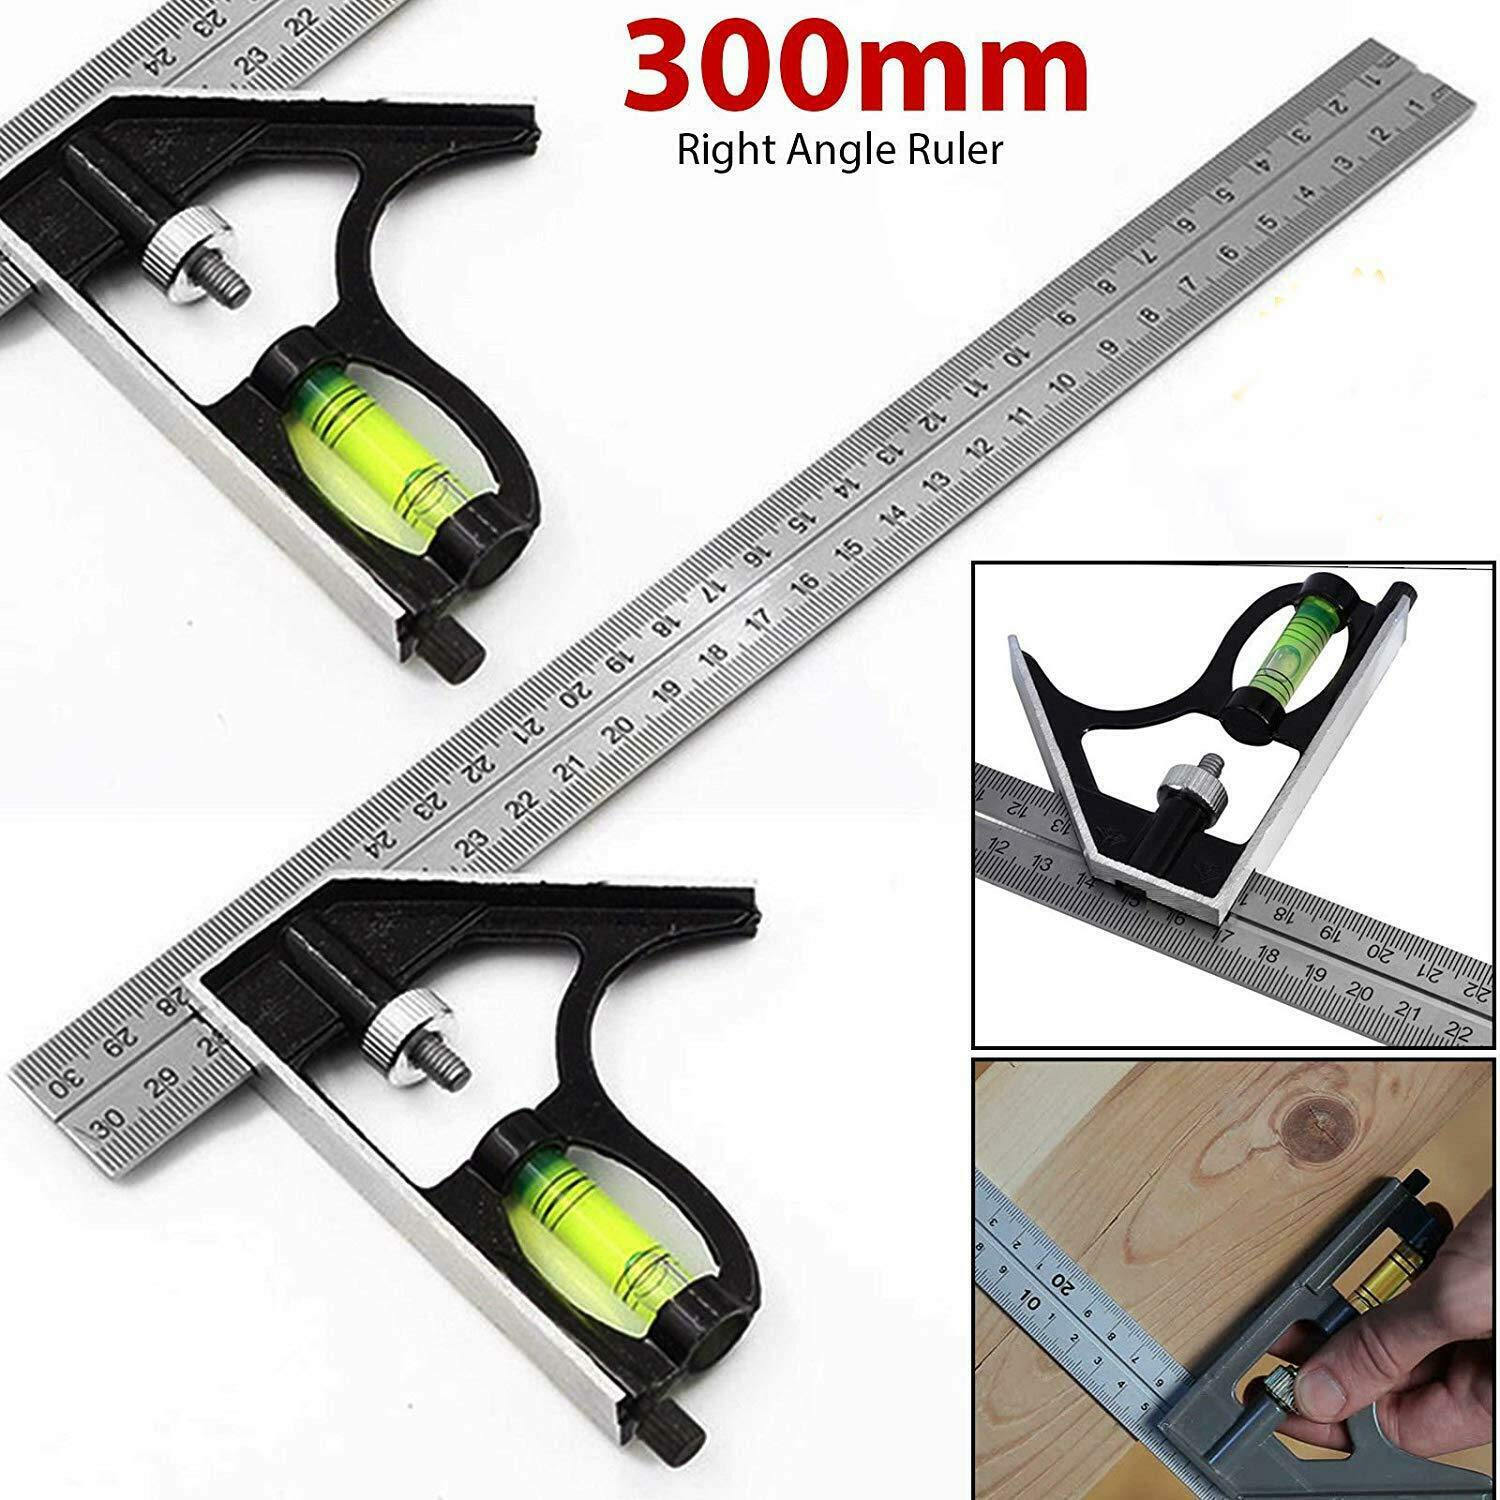 OUYAWEI Hot 300mm Adjustable Engineers Combination Try Square Right Angle Ruler Set 12